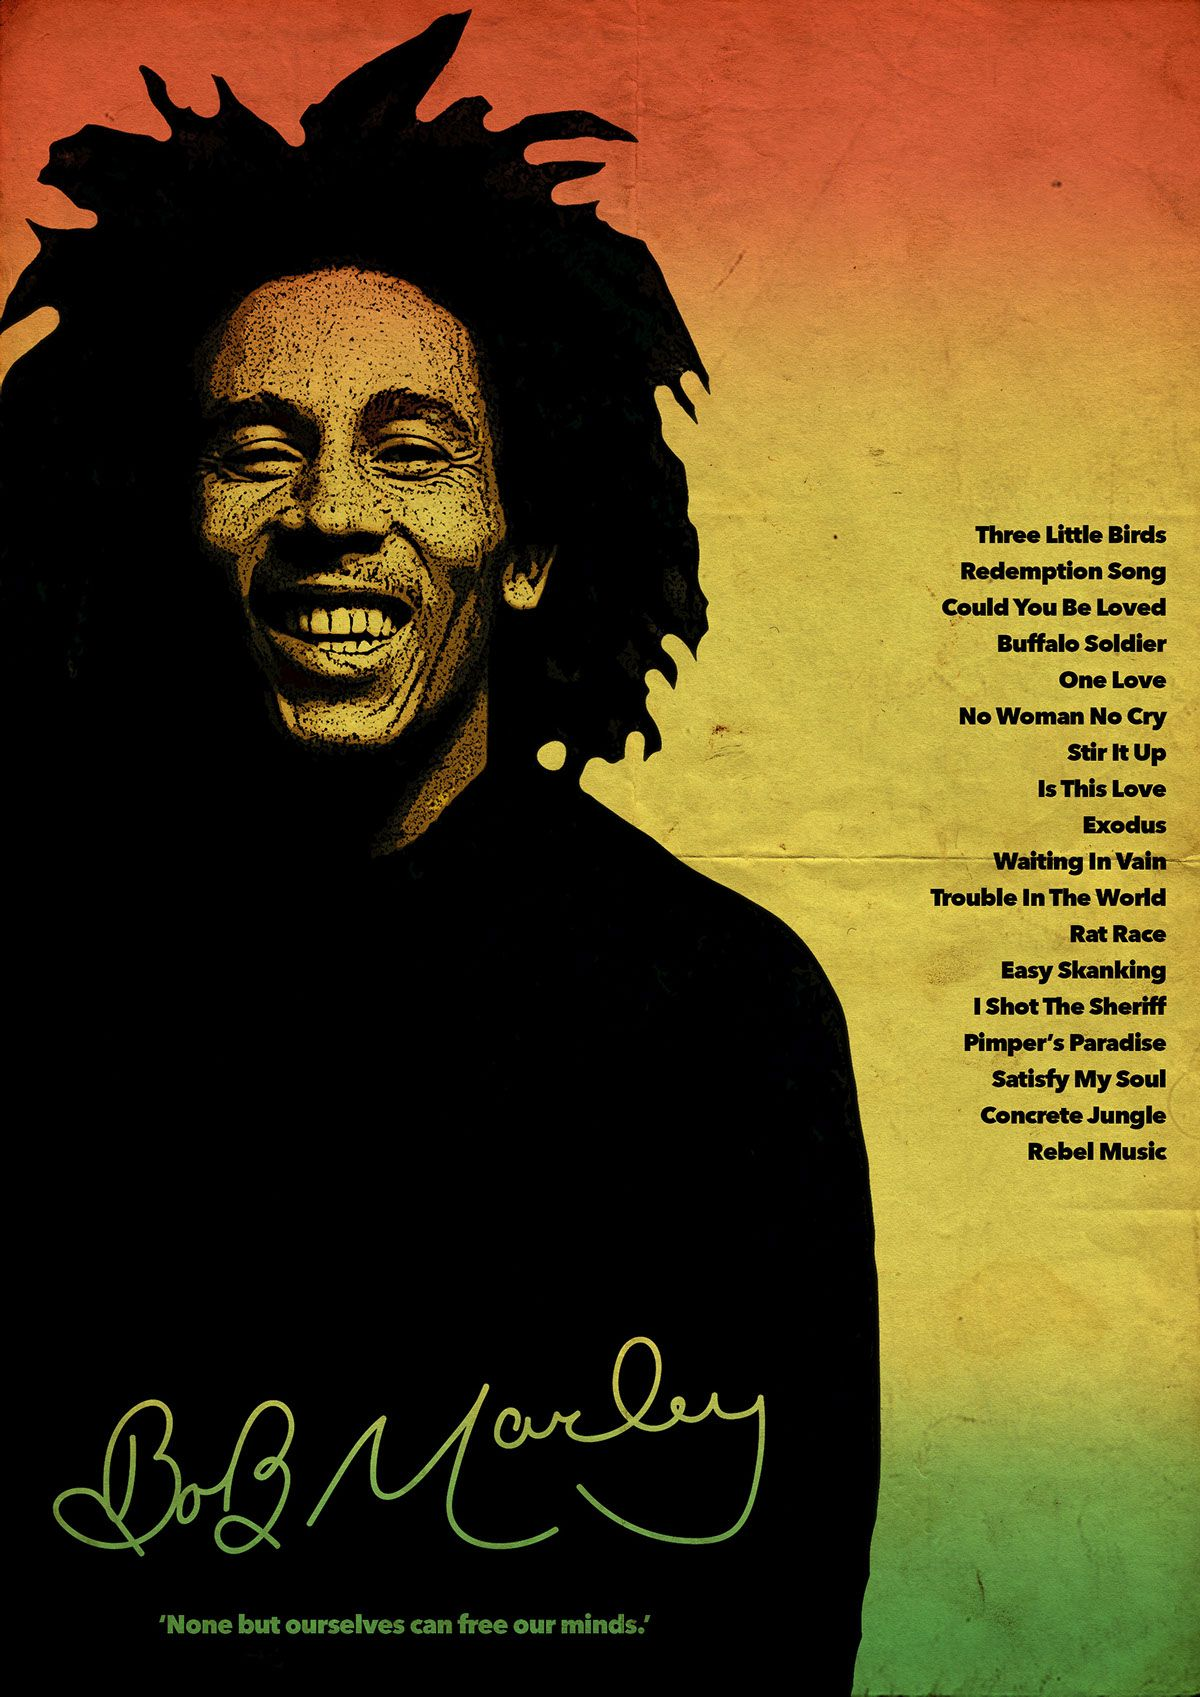 Bob Marley Poster By Luke Walsh On Behance A Combination Of My